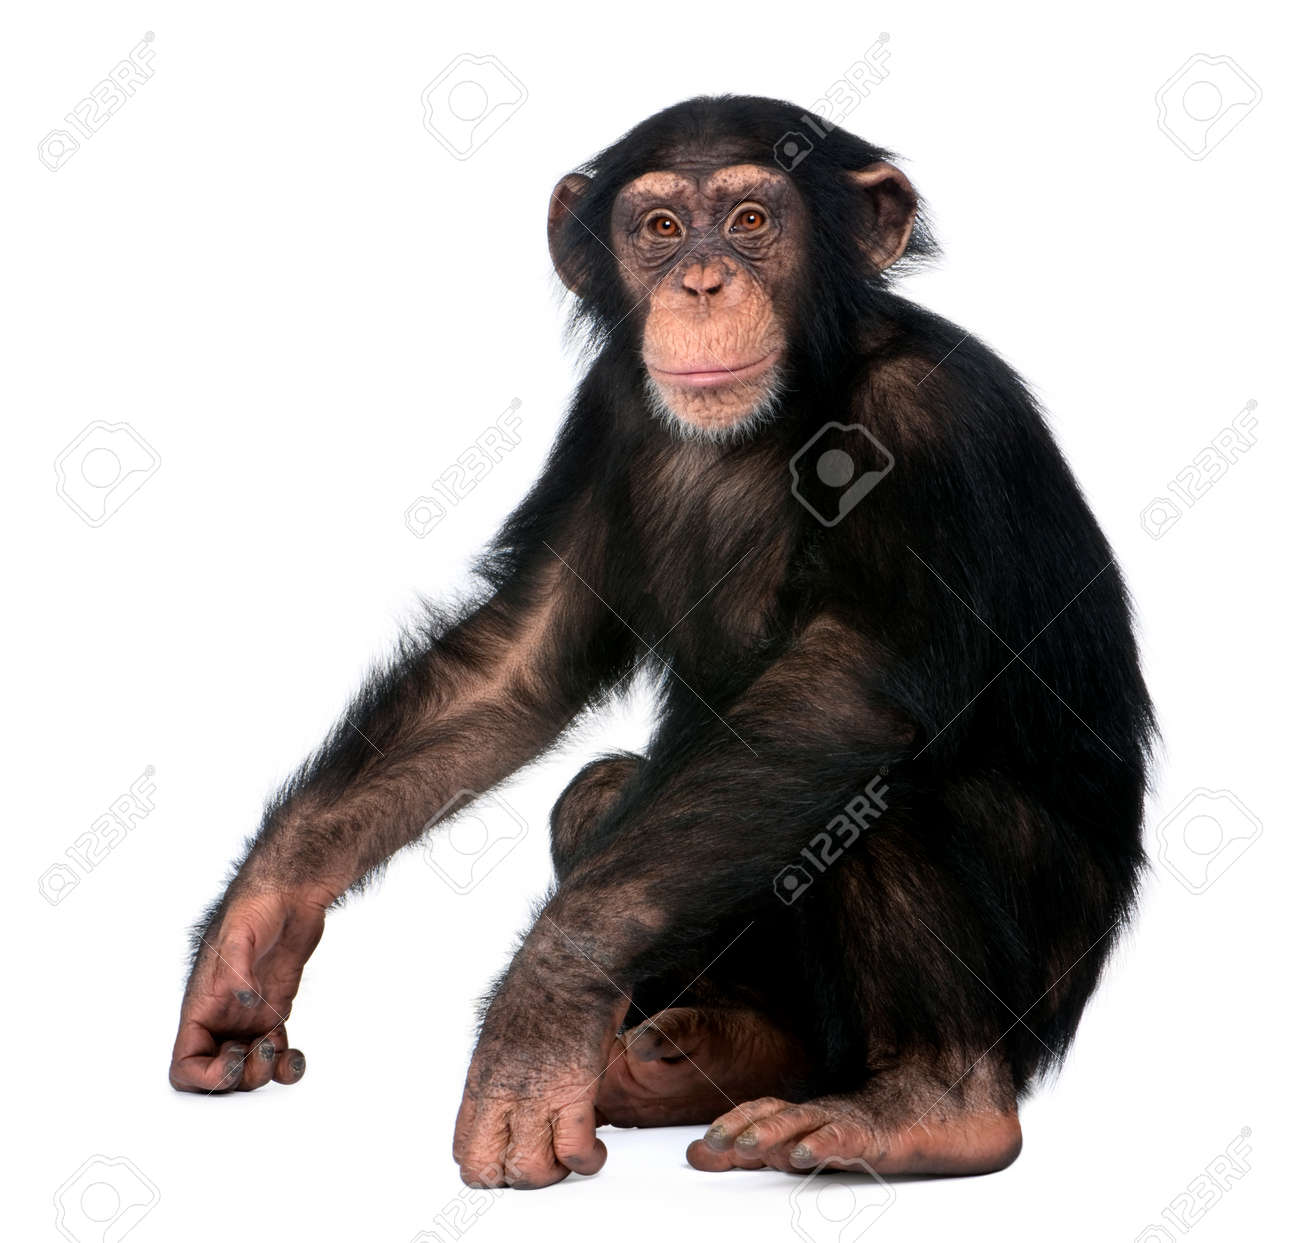 Young Chimpanzee, Simia troglodytes, 5 years old, sitting in front of white background - 90387636